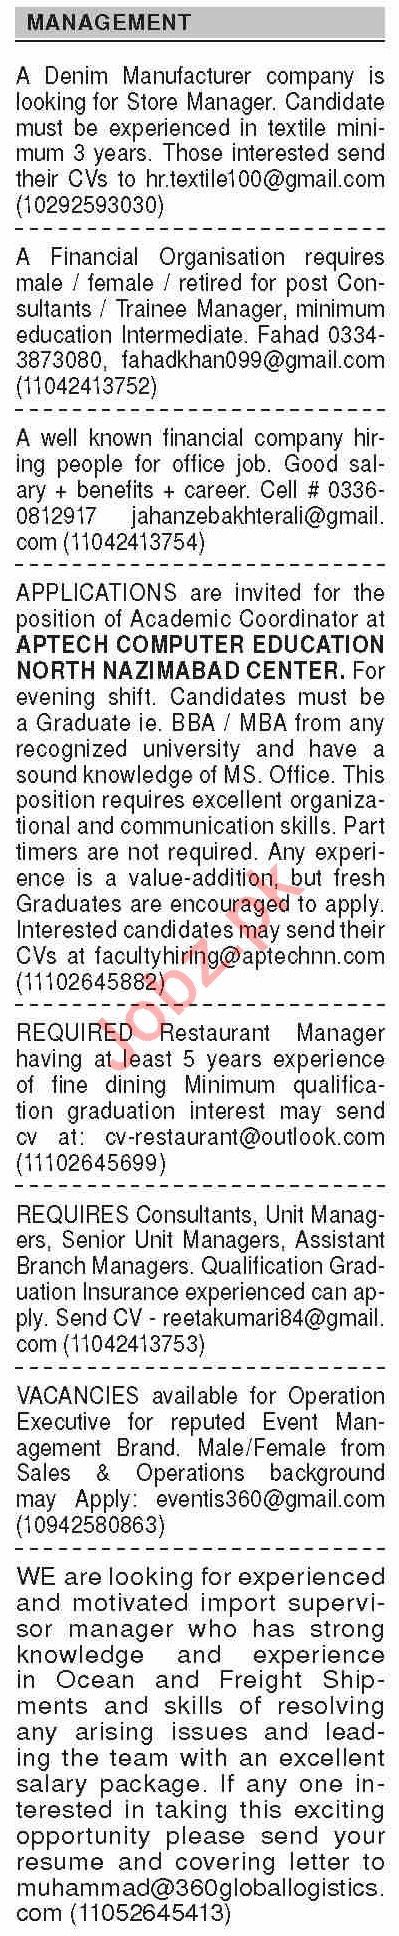 Dawn Sunday Classified Ads 27 Sept 2020 for Management